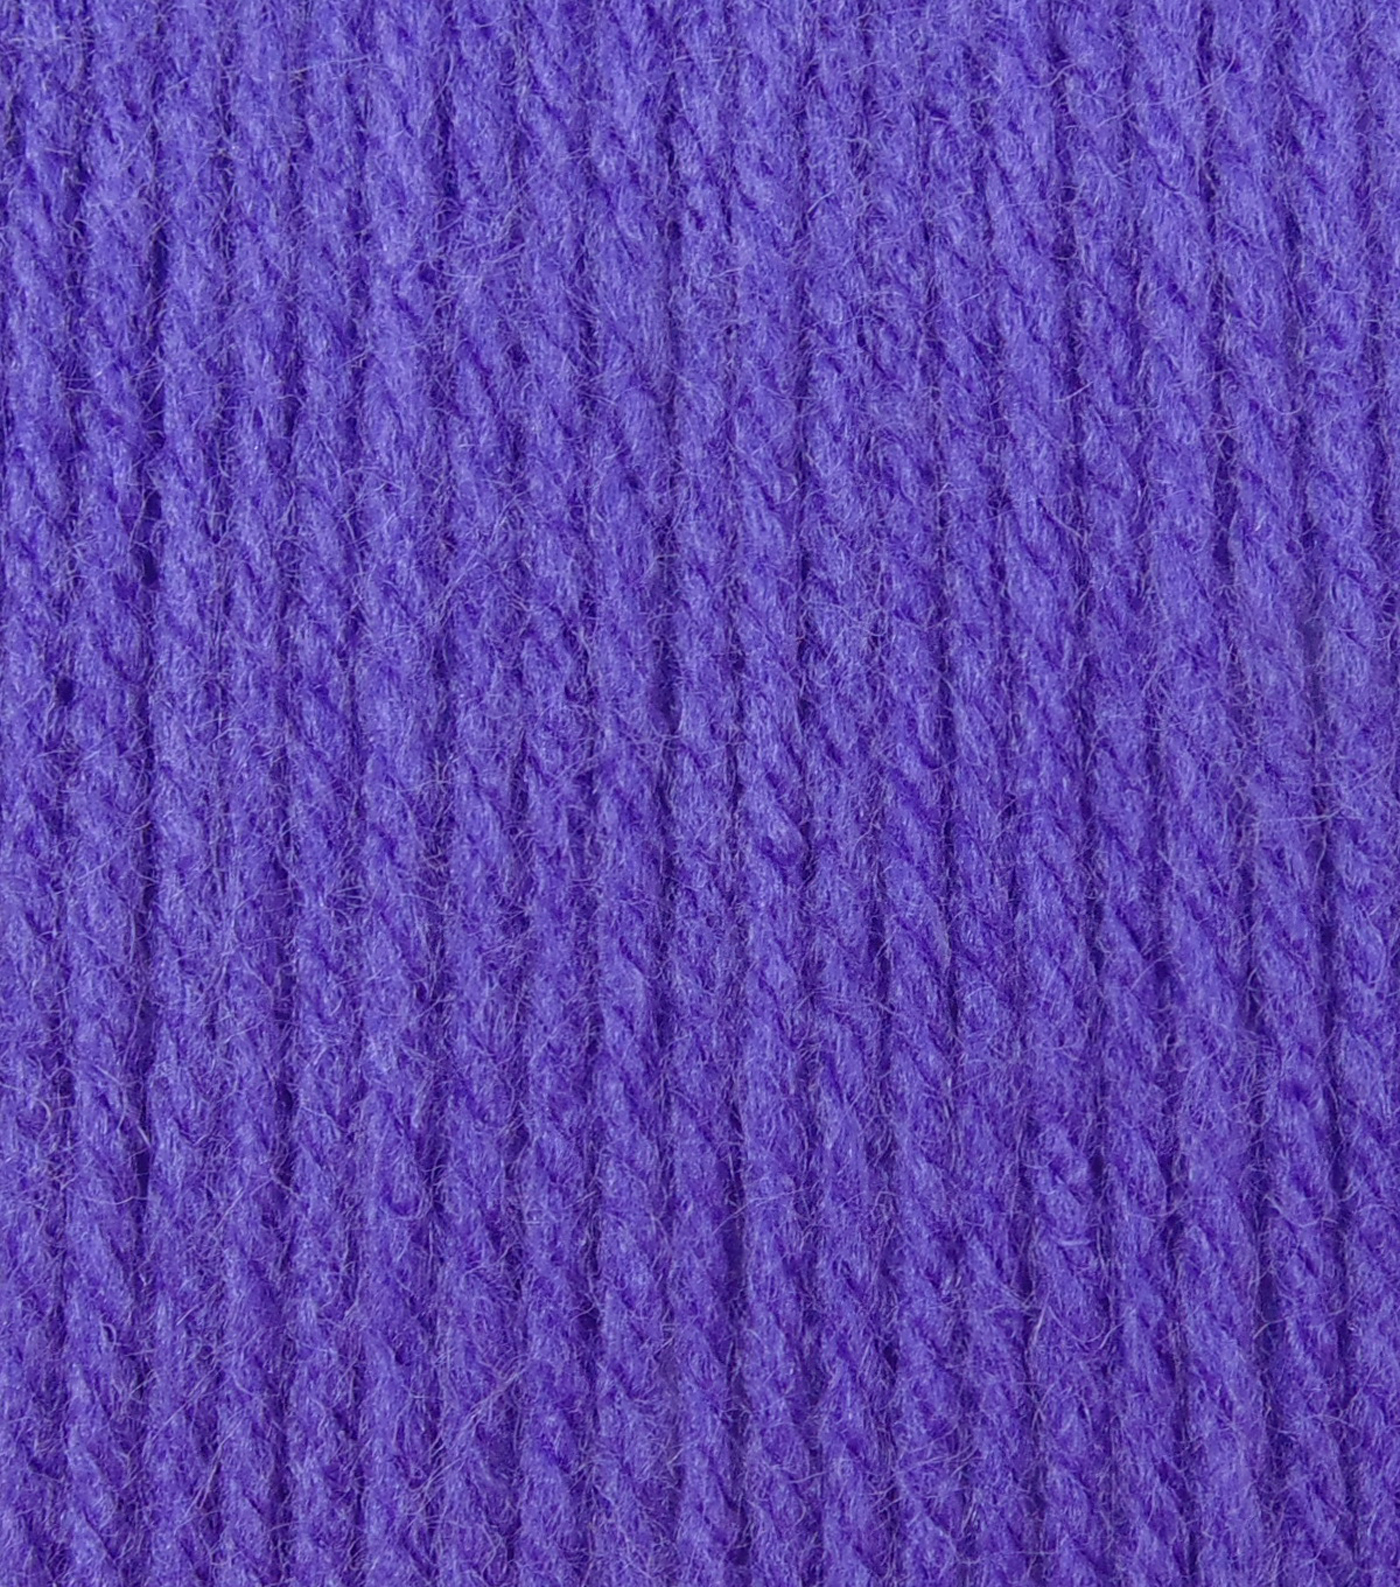 Big Twist Collection Value Worsted Yarn, Blueberry